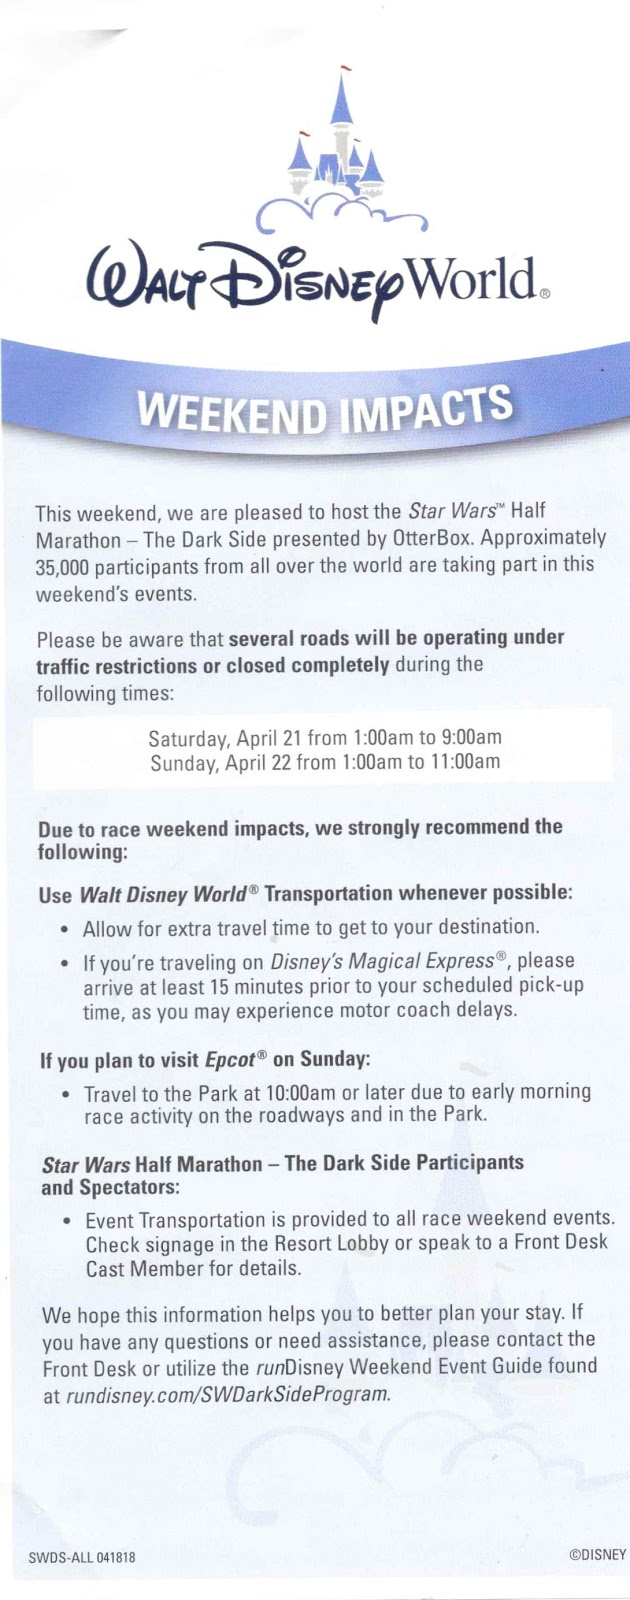 Disney World Star Wars Half Marathon Road Restrictions 2018